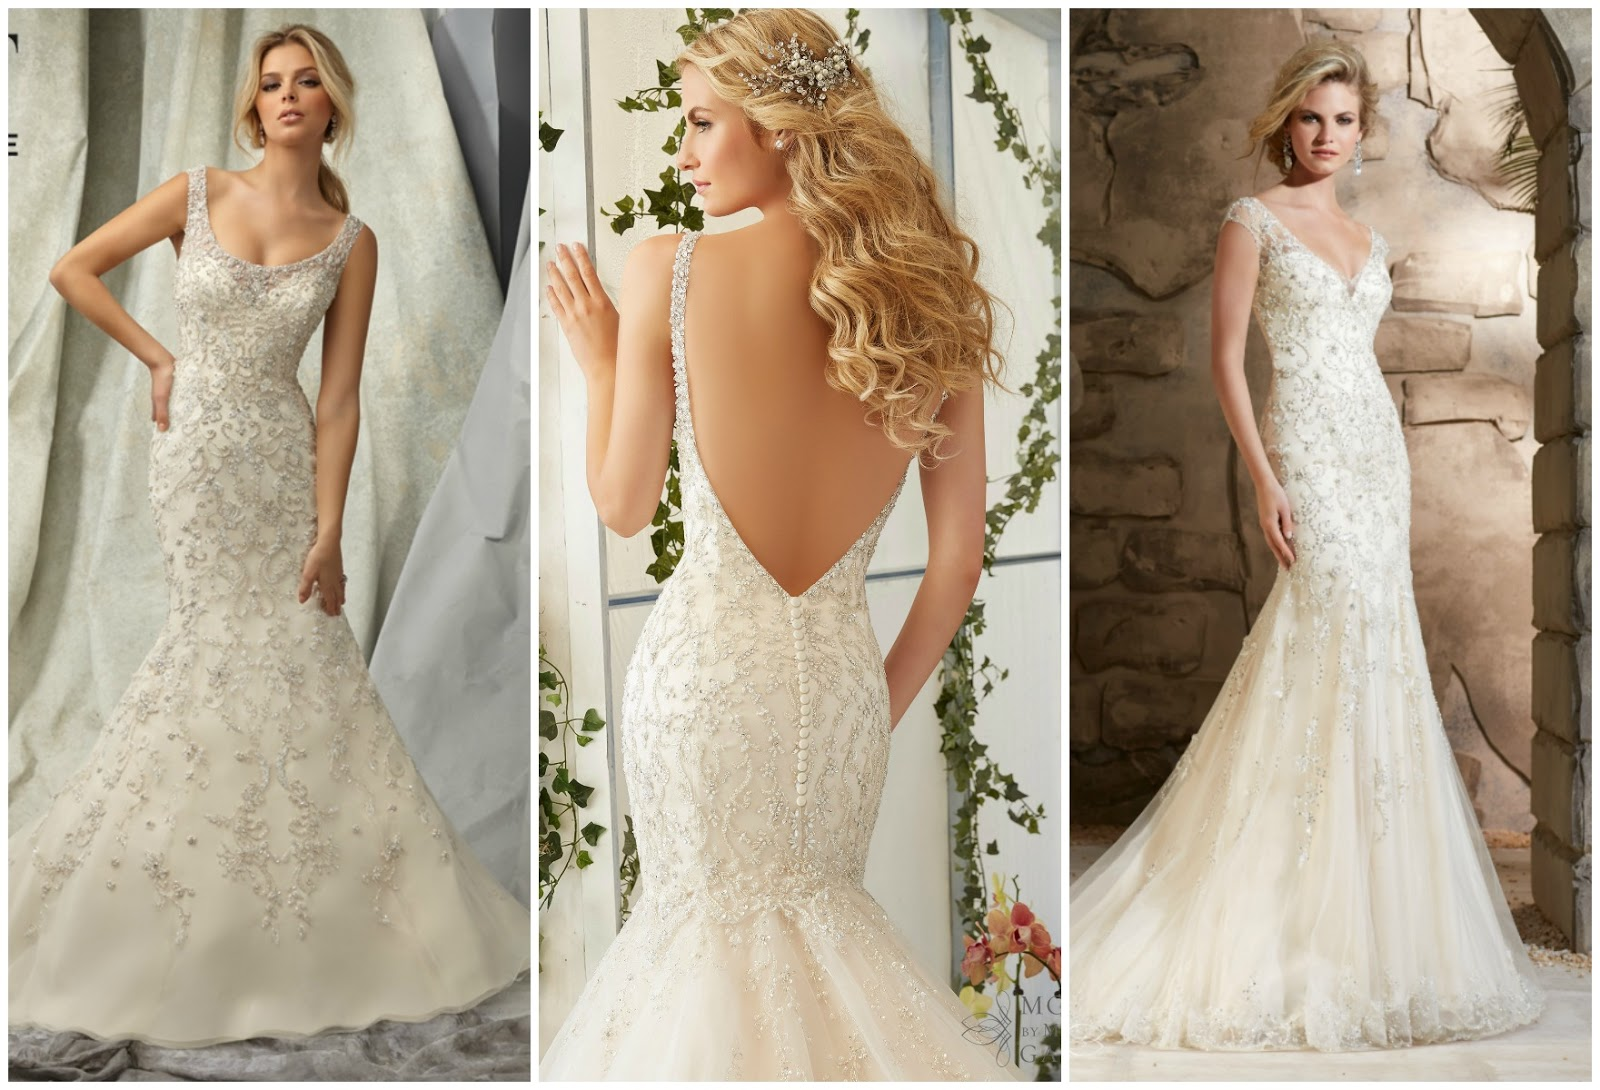 Brides Of America Online Store Brides Love Our Wedding Dresses With